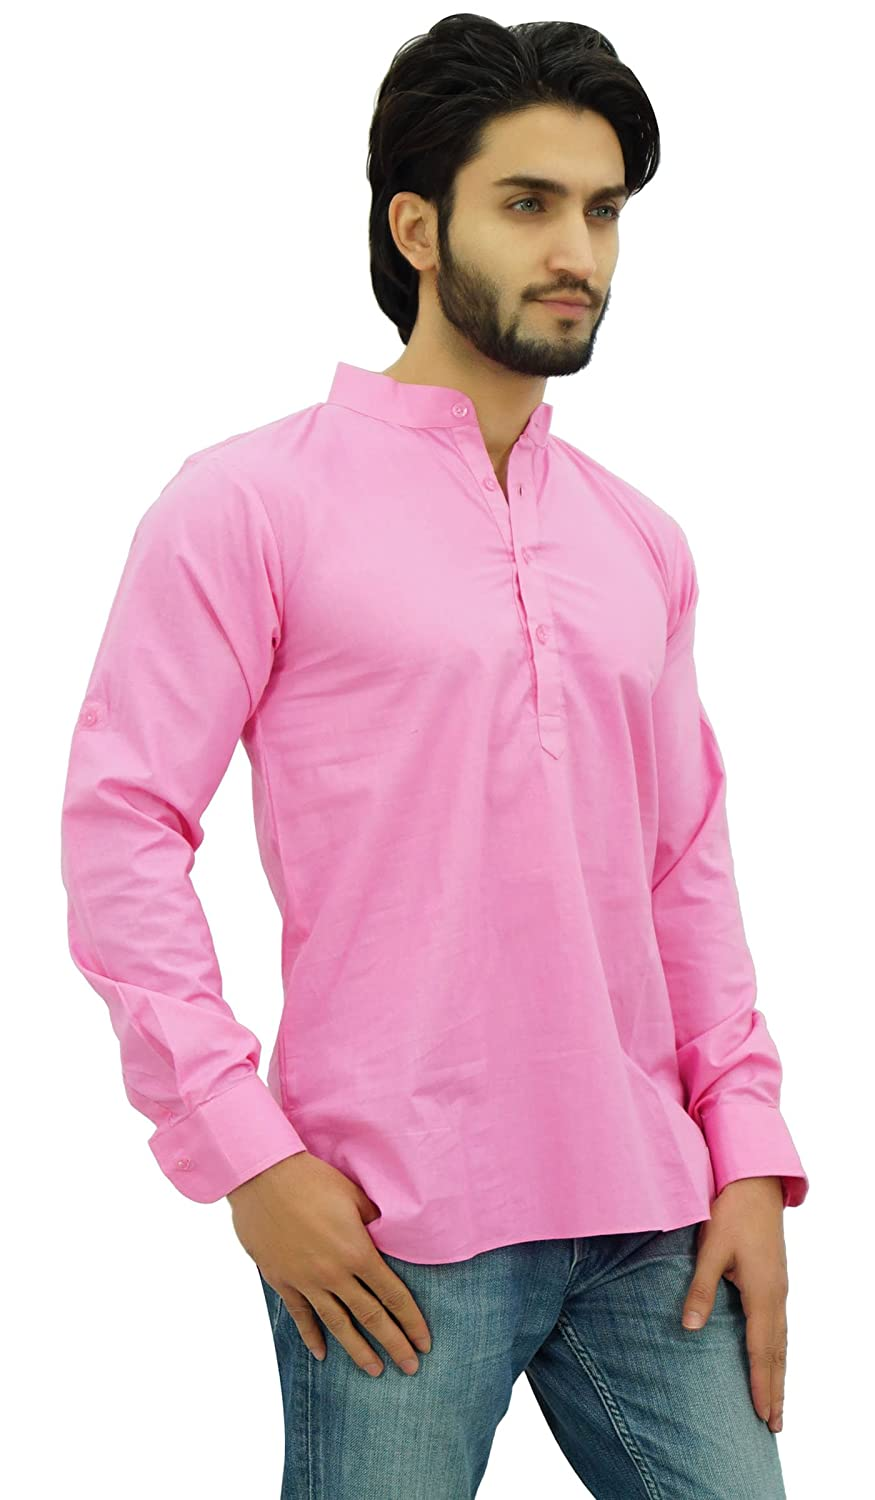 4f768e49f Amazon.com: Atasi Ethnic Men's Short Kurta Mandarin Collar Cotton Shirt:  Clothing